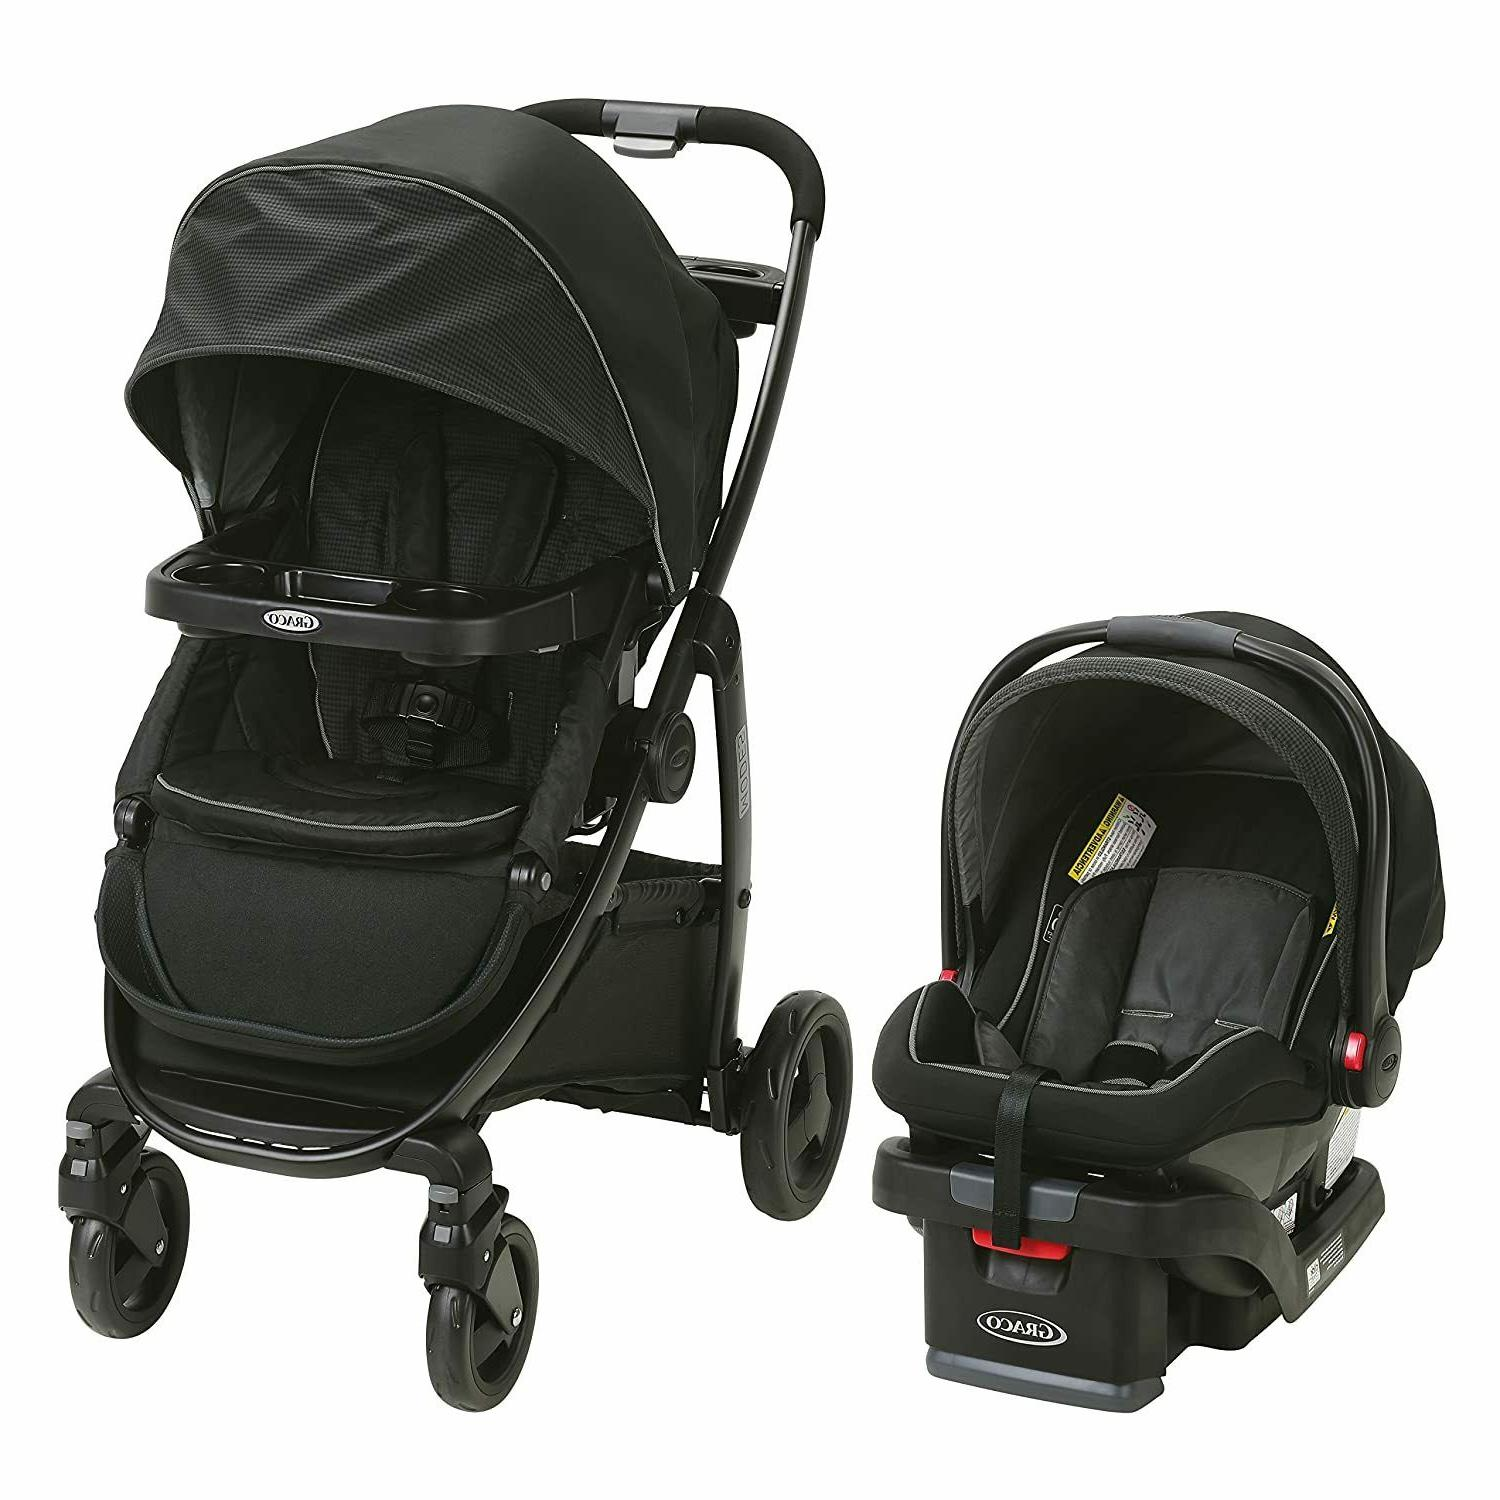 Graco 2048727 Modes Travel System